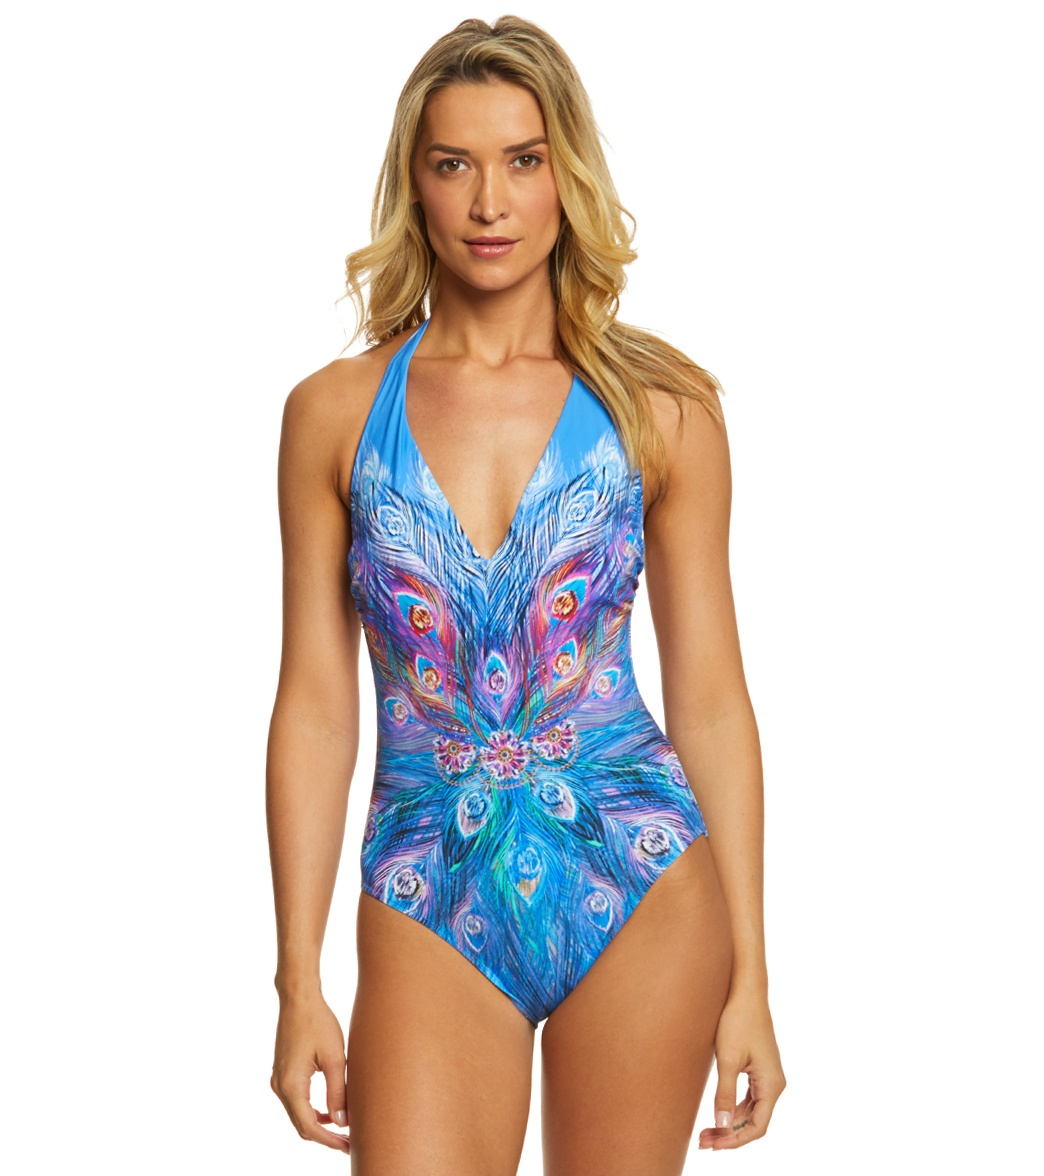 9e84af7178add3 Gottex Dream Catcher Halter One Piece Swimsuit at SwimOutlet.com - Free  Shipping